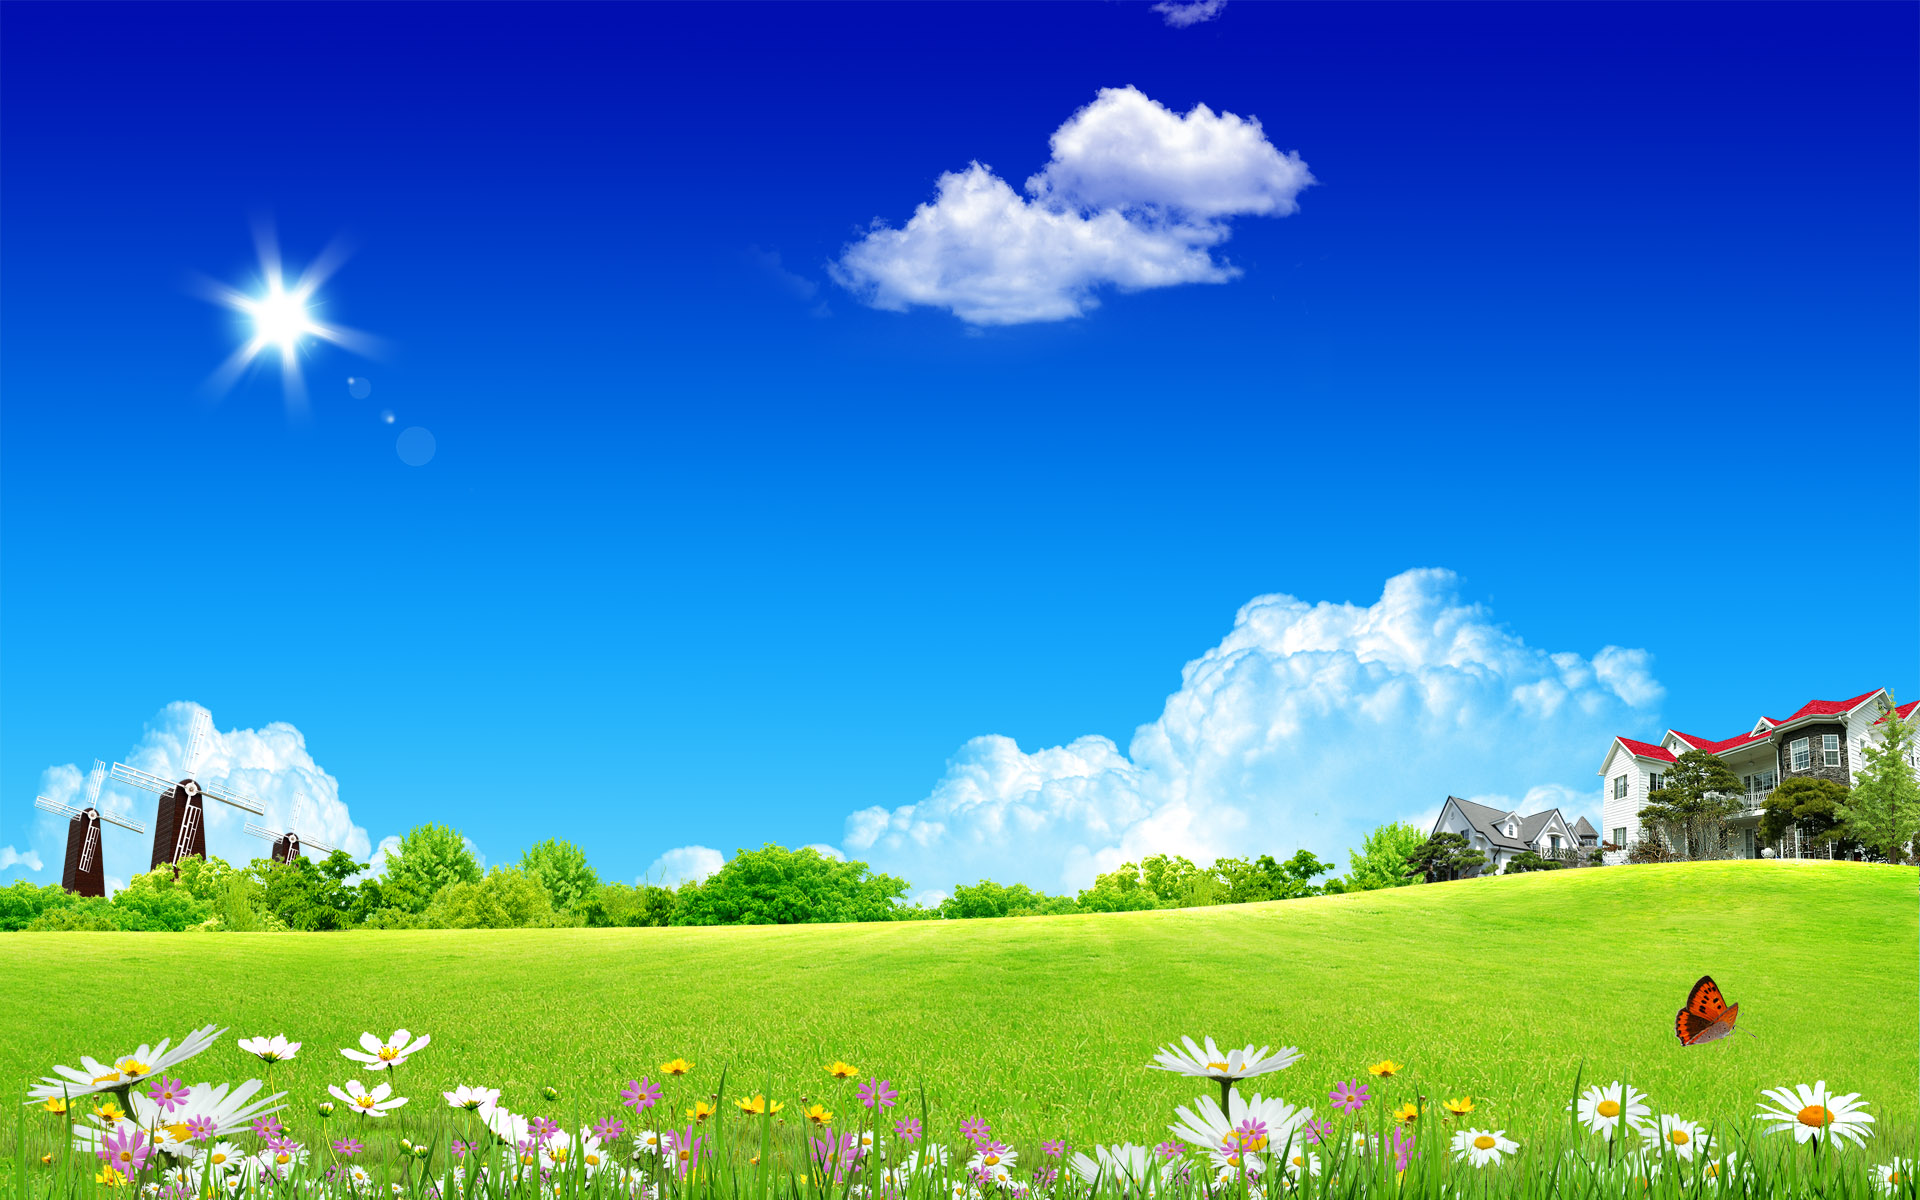 Cool Wallpaper For Home, Feels So Great : Clean Home Sky Wide Wallpaper